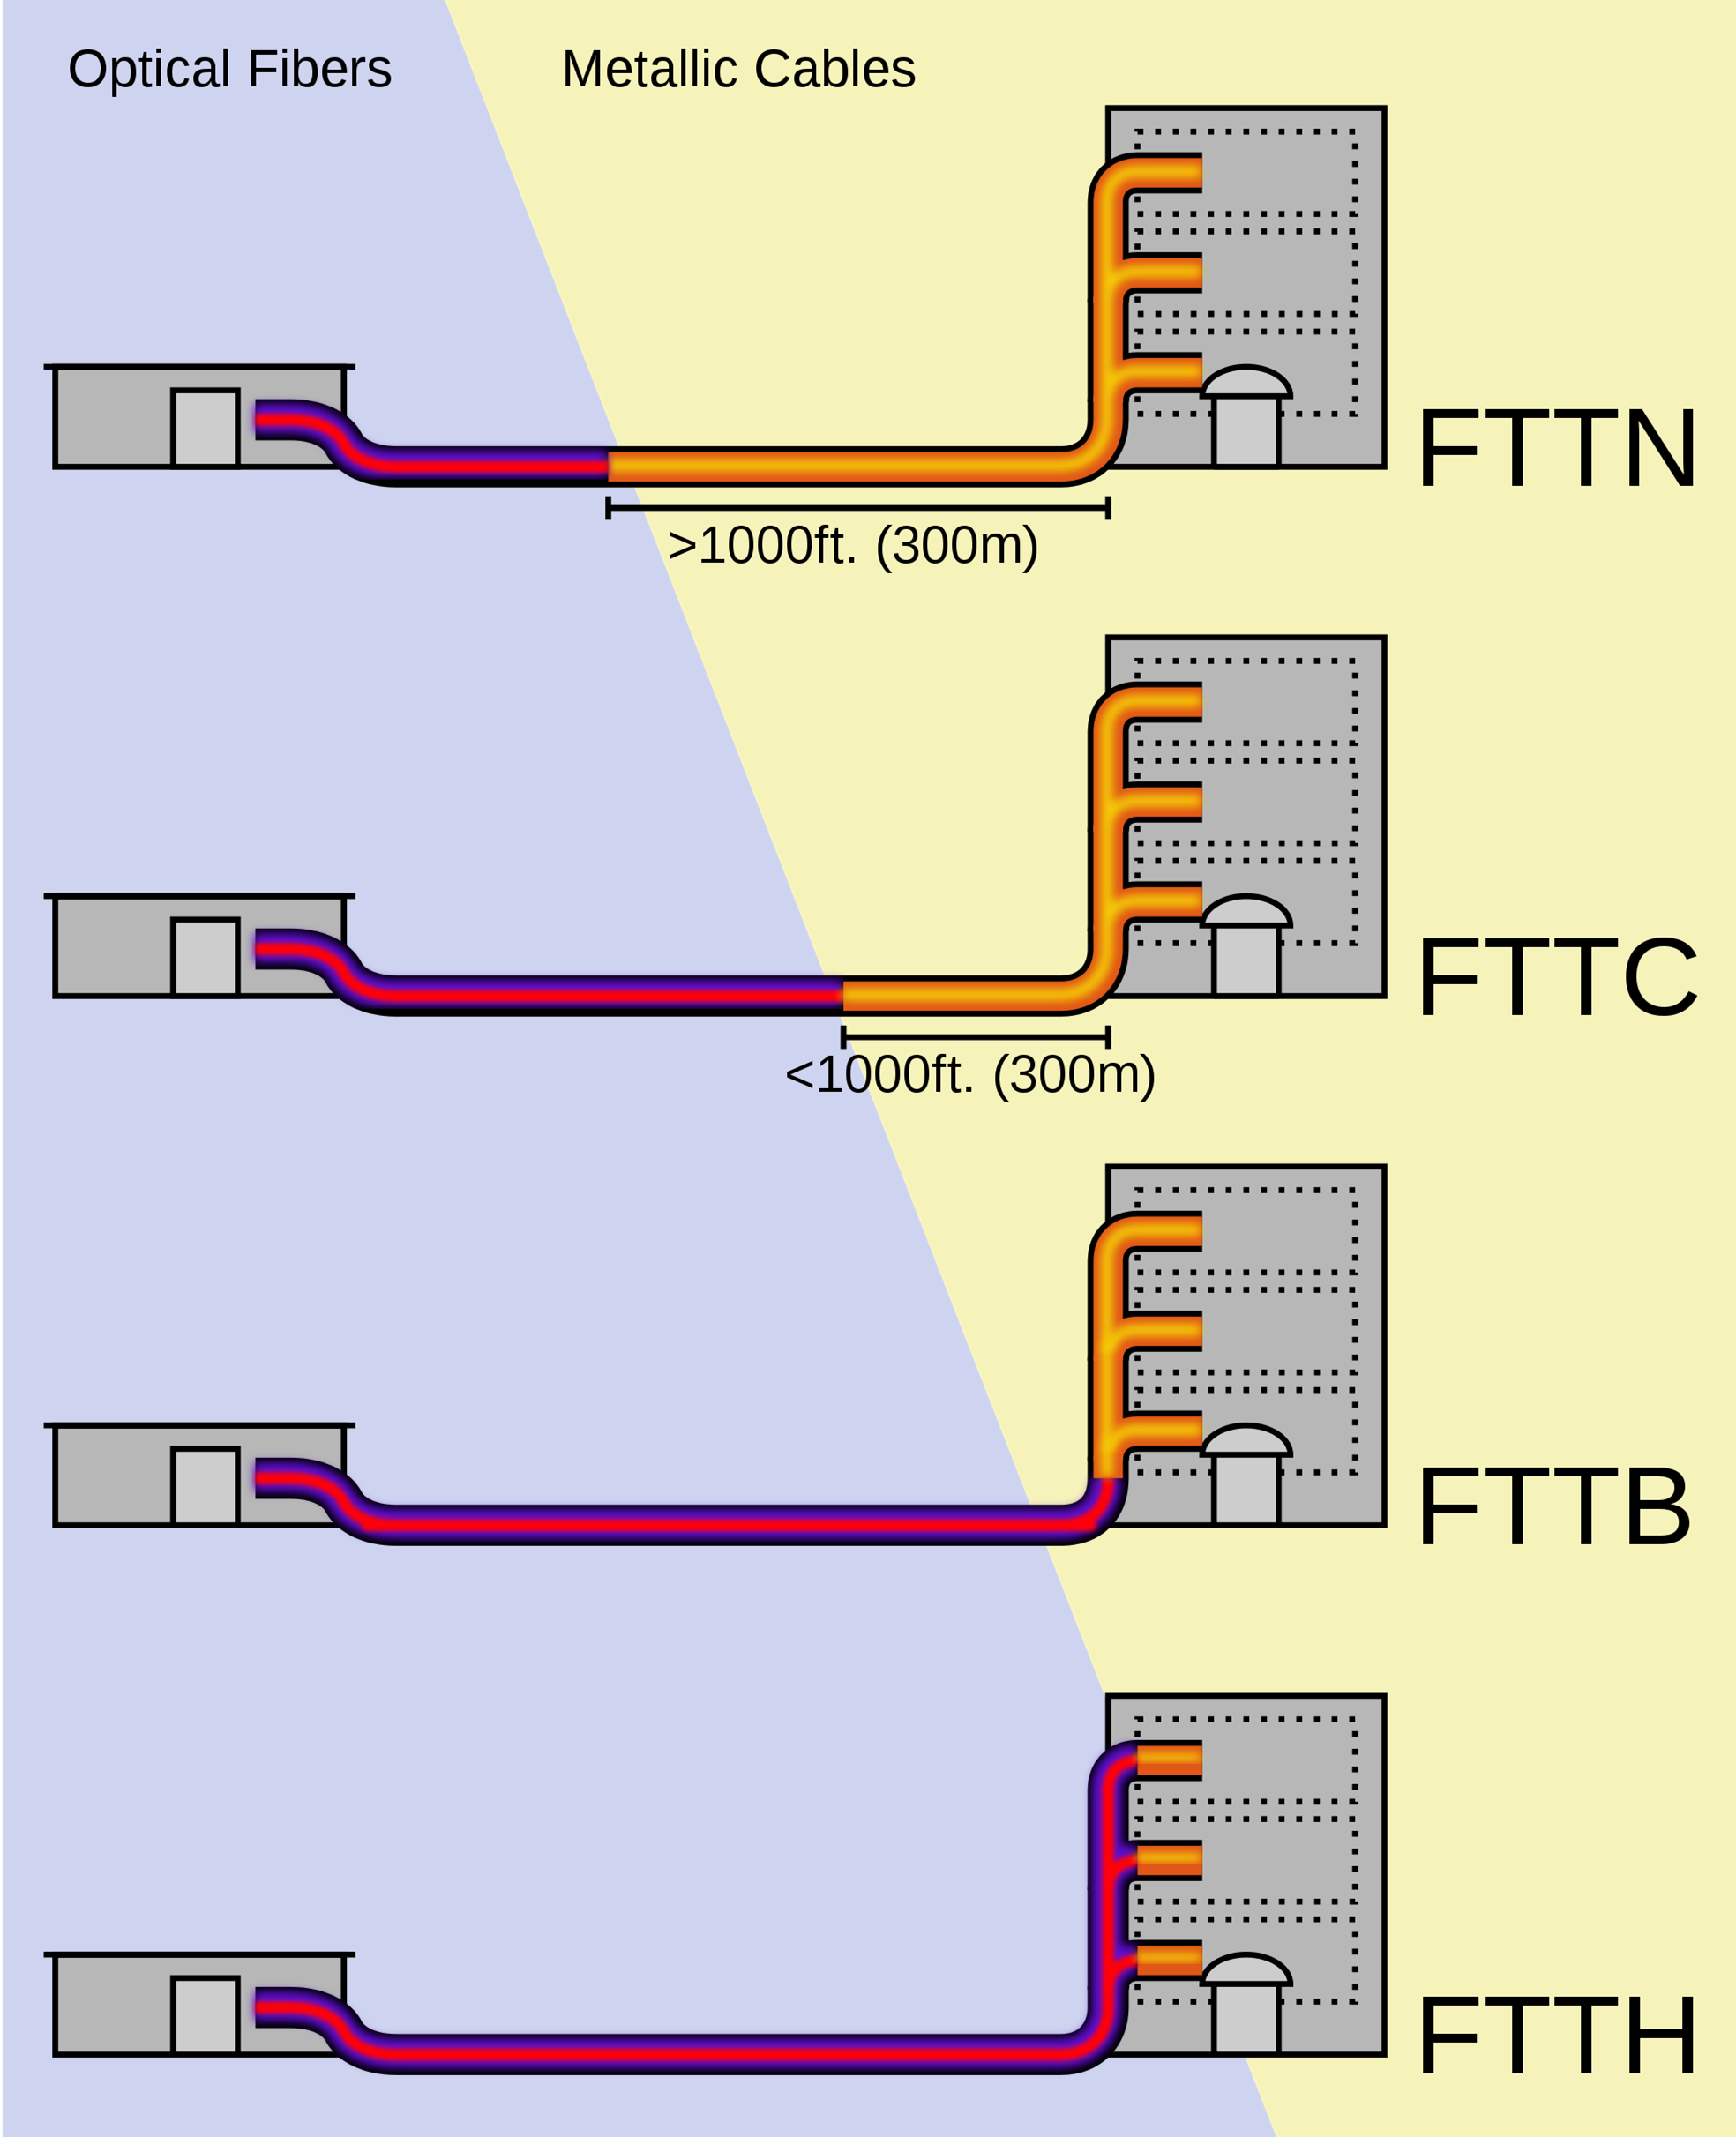 Admin Author At Fiber Cabling Solution Page 4 Of 5 Optic Cablethe Global In Components Fttx